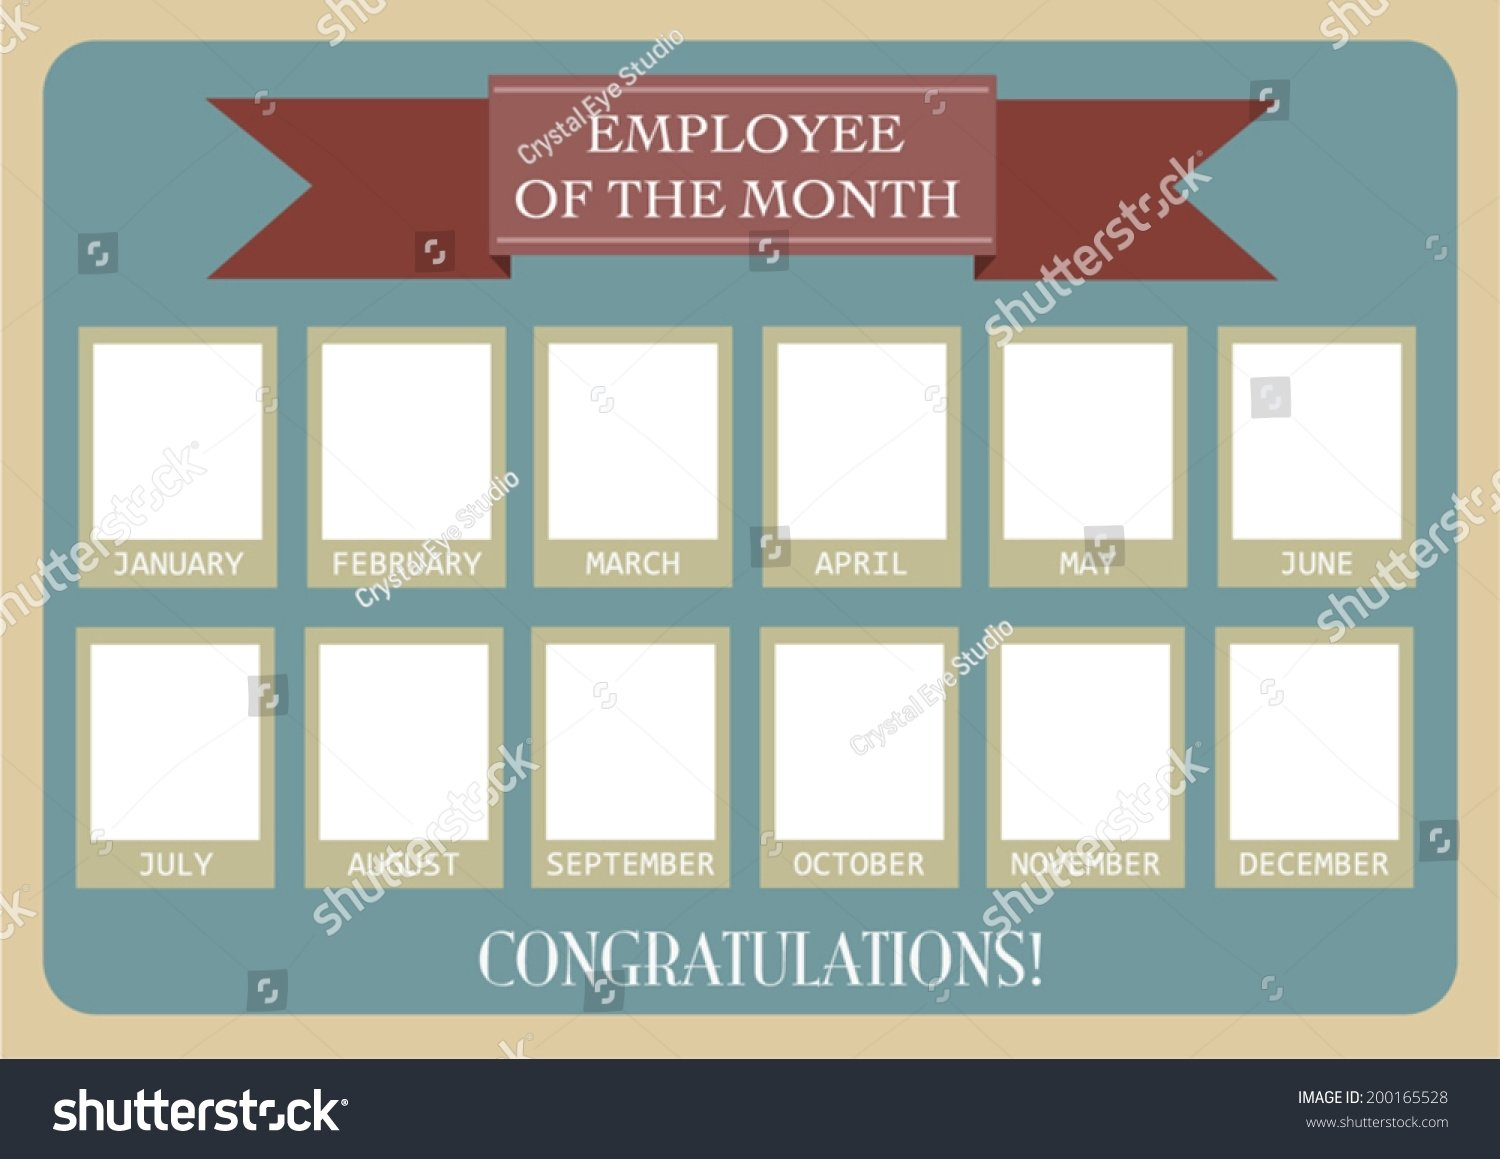 10 Awesome Employee Of The Month Ideas employee month photo calendarvector eps10 image vectorielle